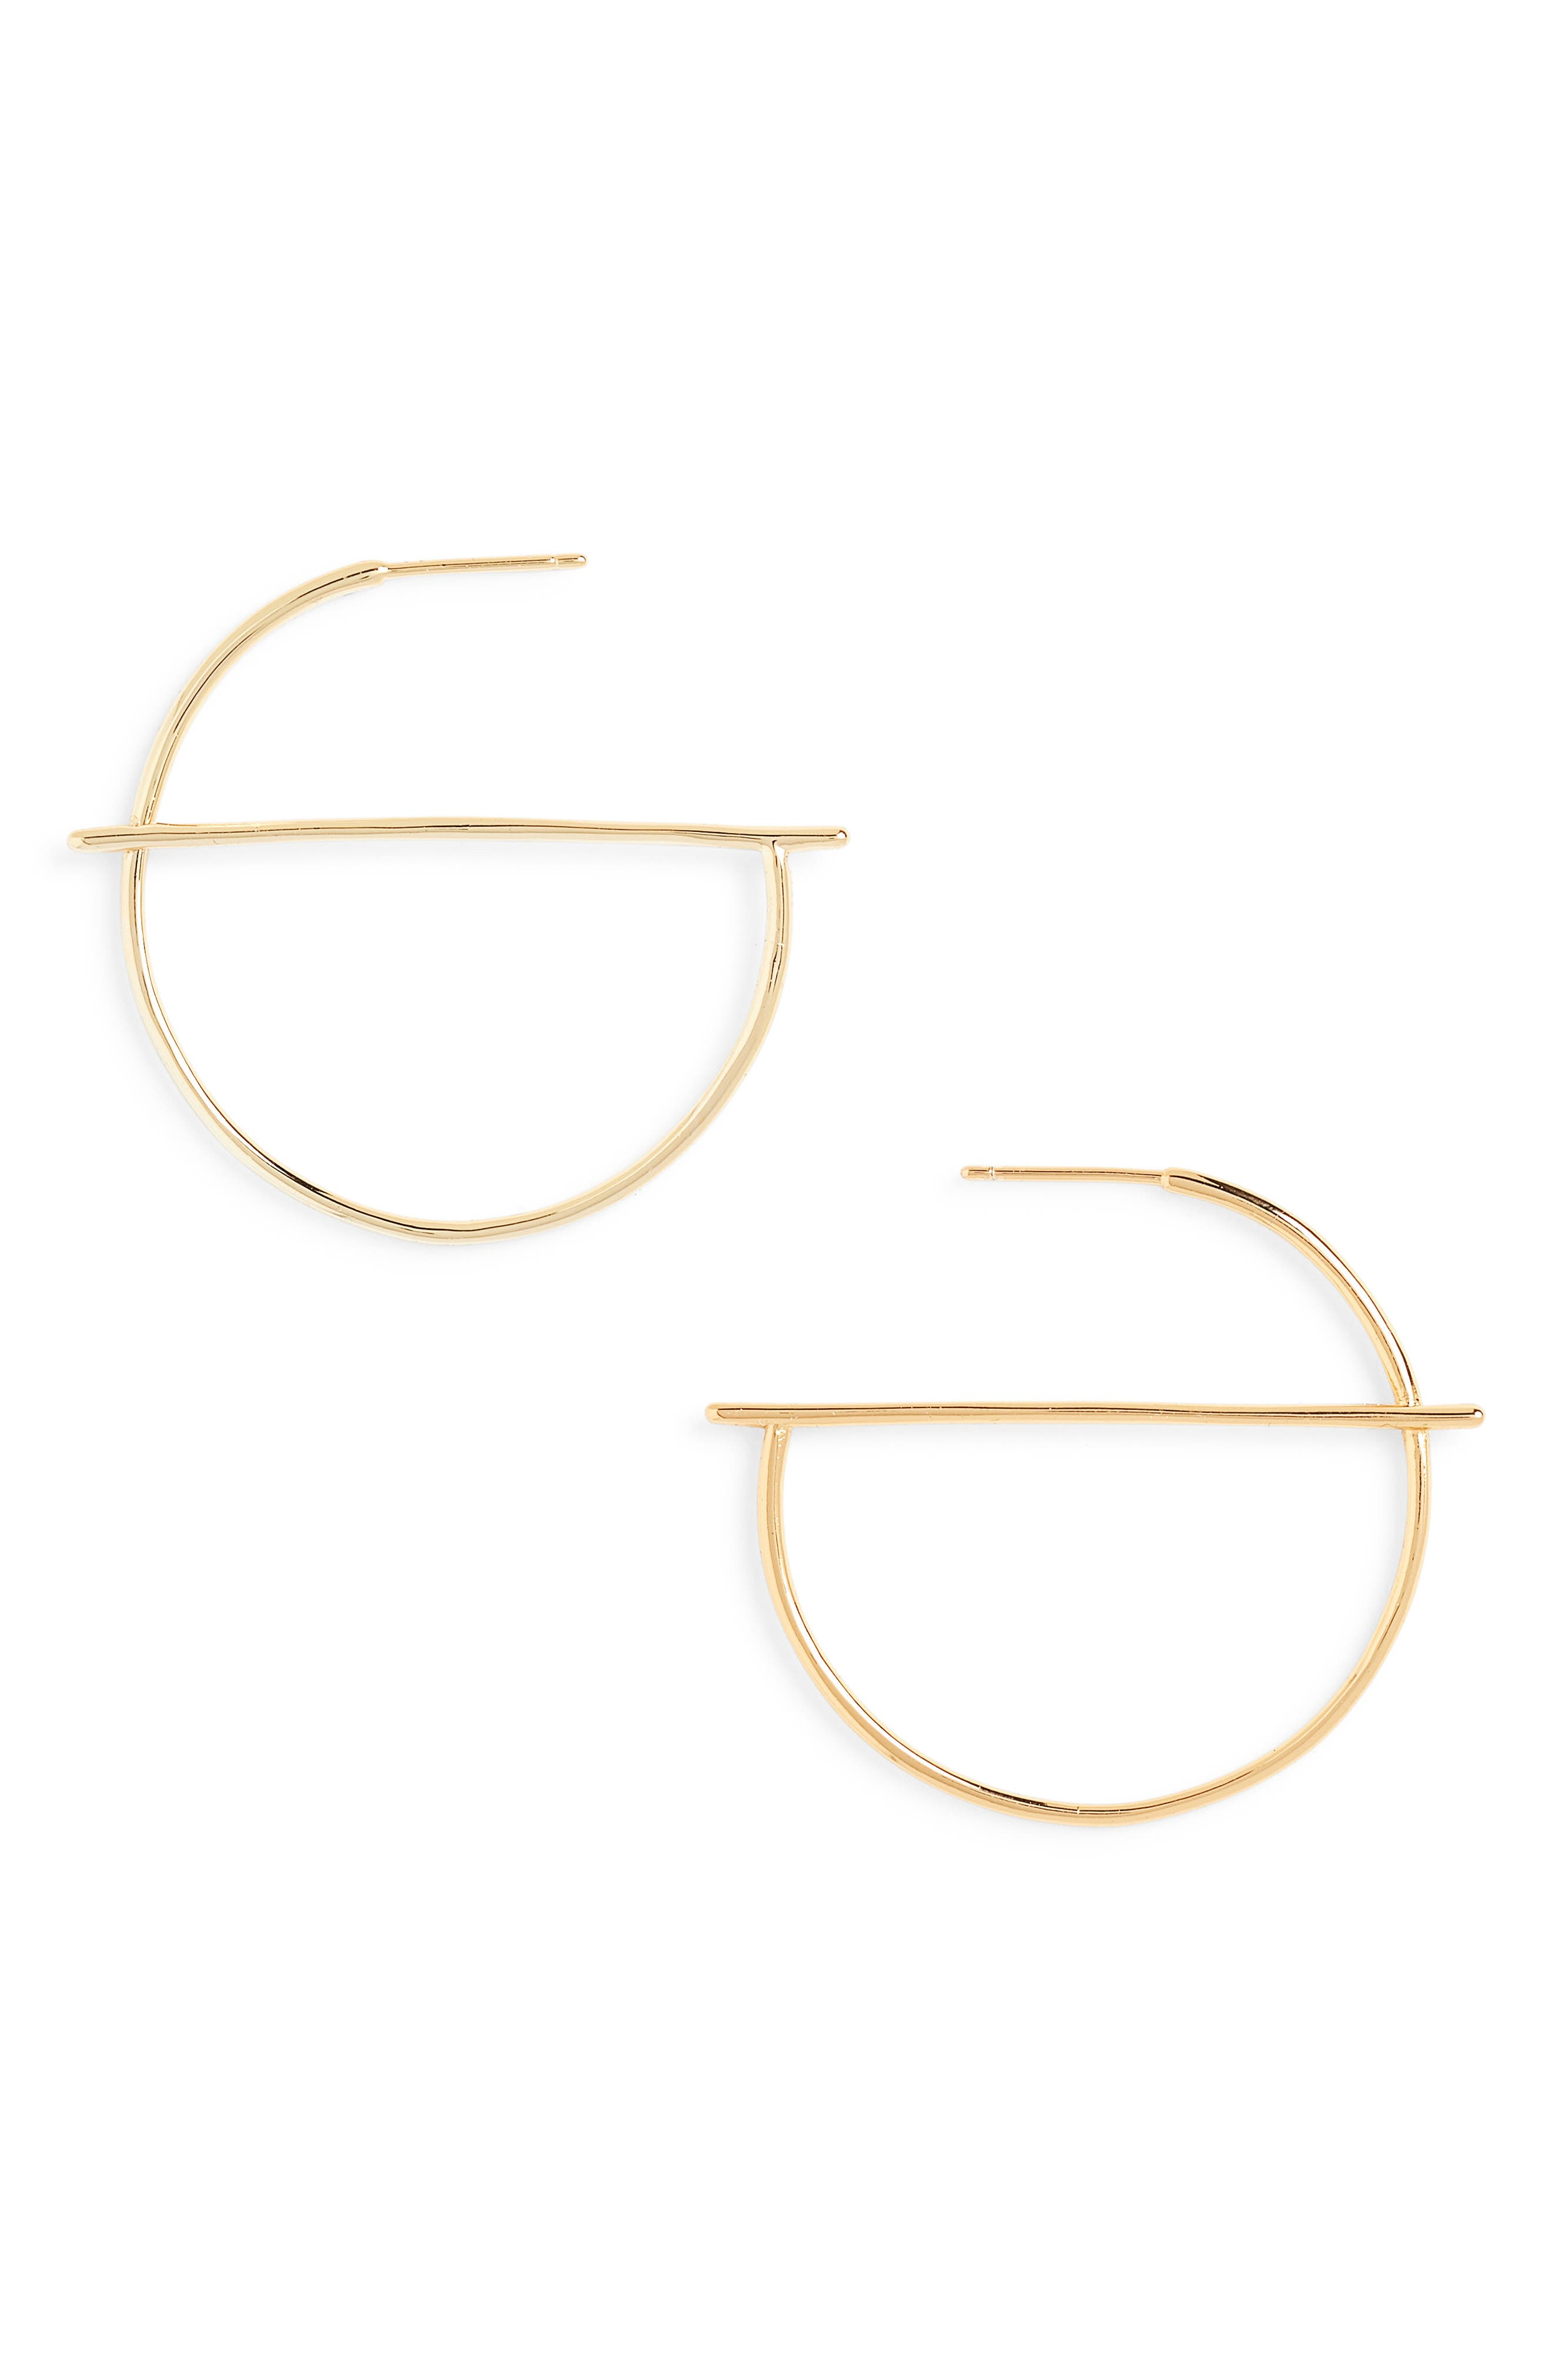 These svelte hoop earrings will lend geometric shine to any look. Style Name: Sterling Forever Half Geometric Hoop Earrings. Style Number: 5763966. Available in stores.